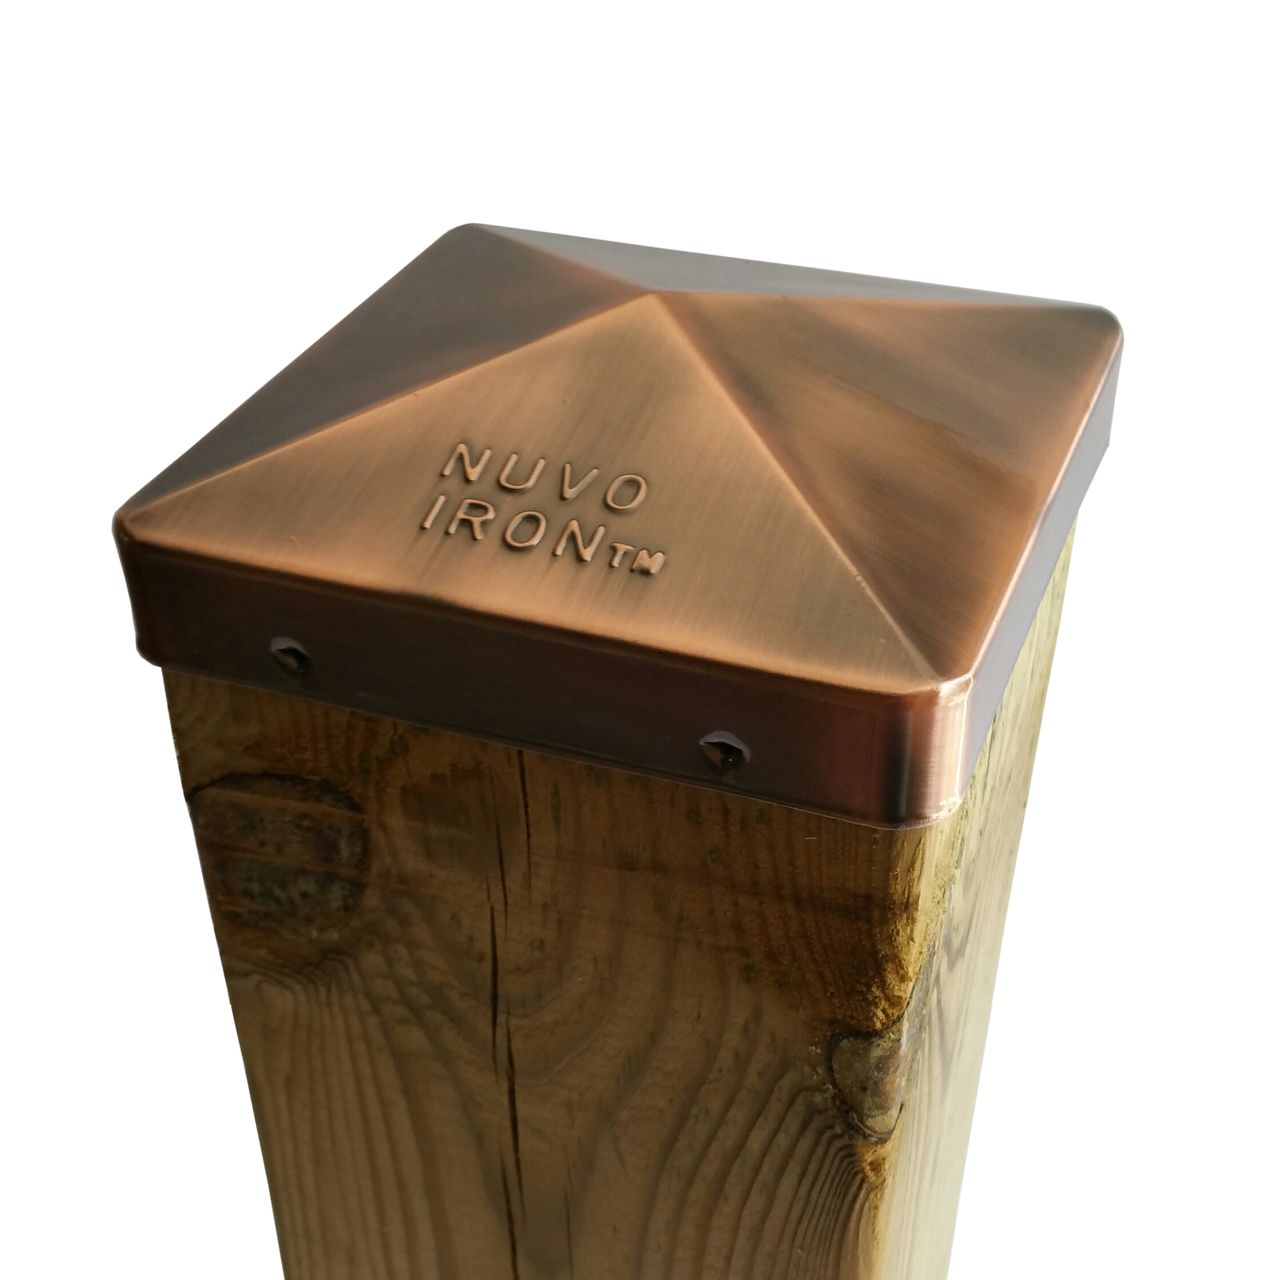 Nuvo Iron 5 5 X 5 5 Post Cap Nominal 6x6 For Posts With Rounded Corners Copper Plated Pyramid Style Copper Plated Plating